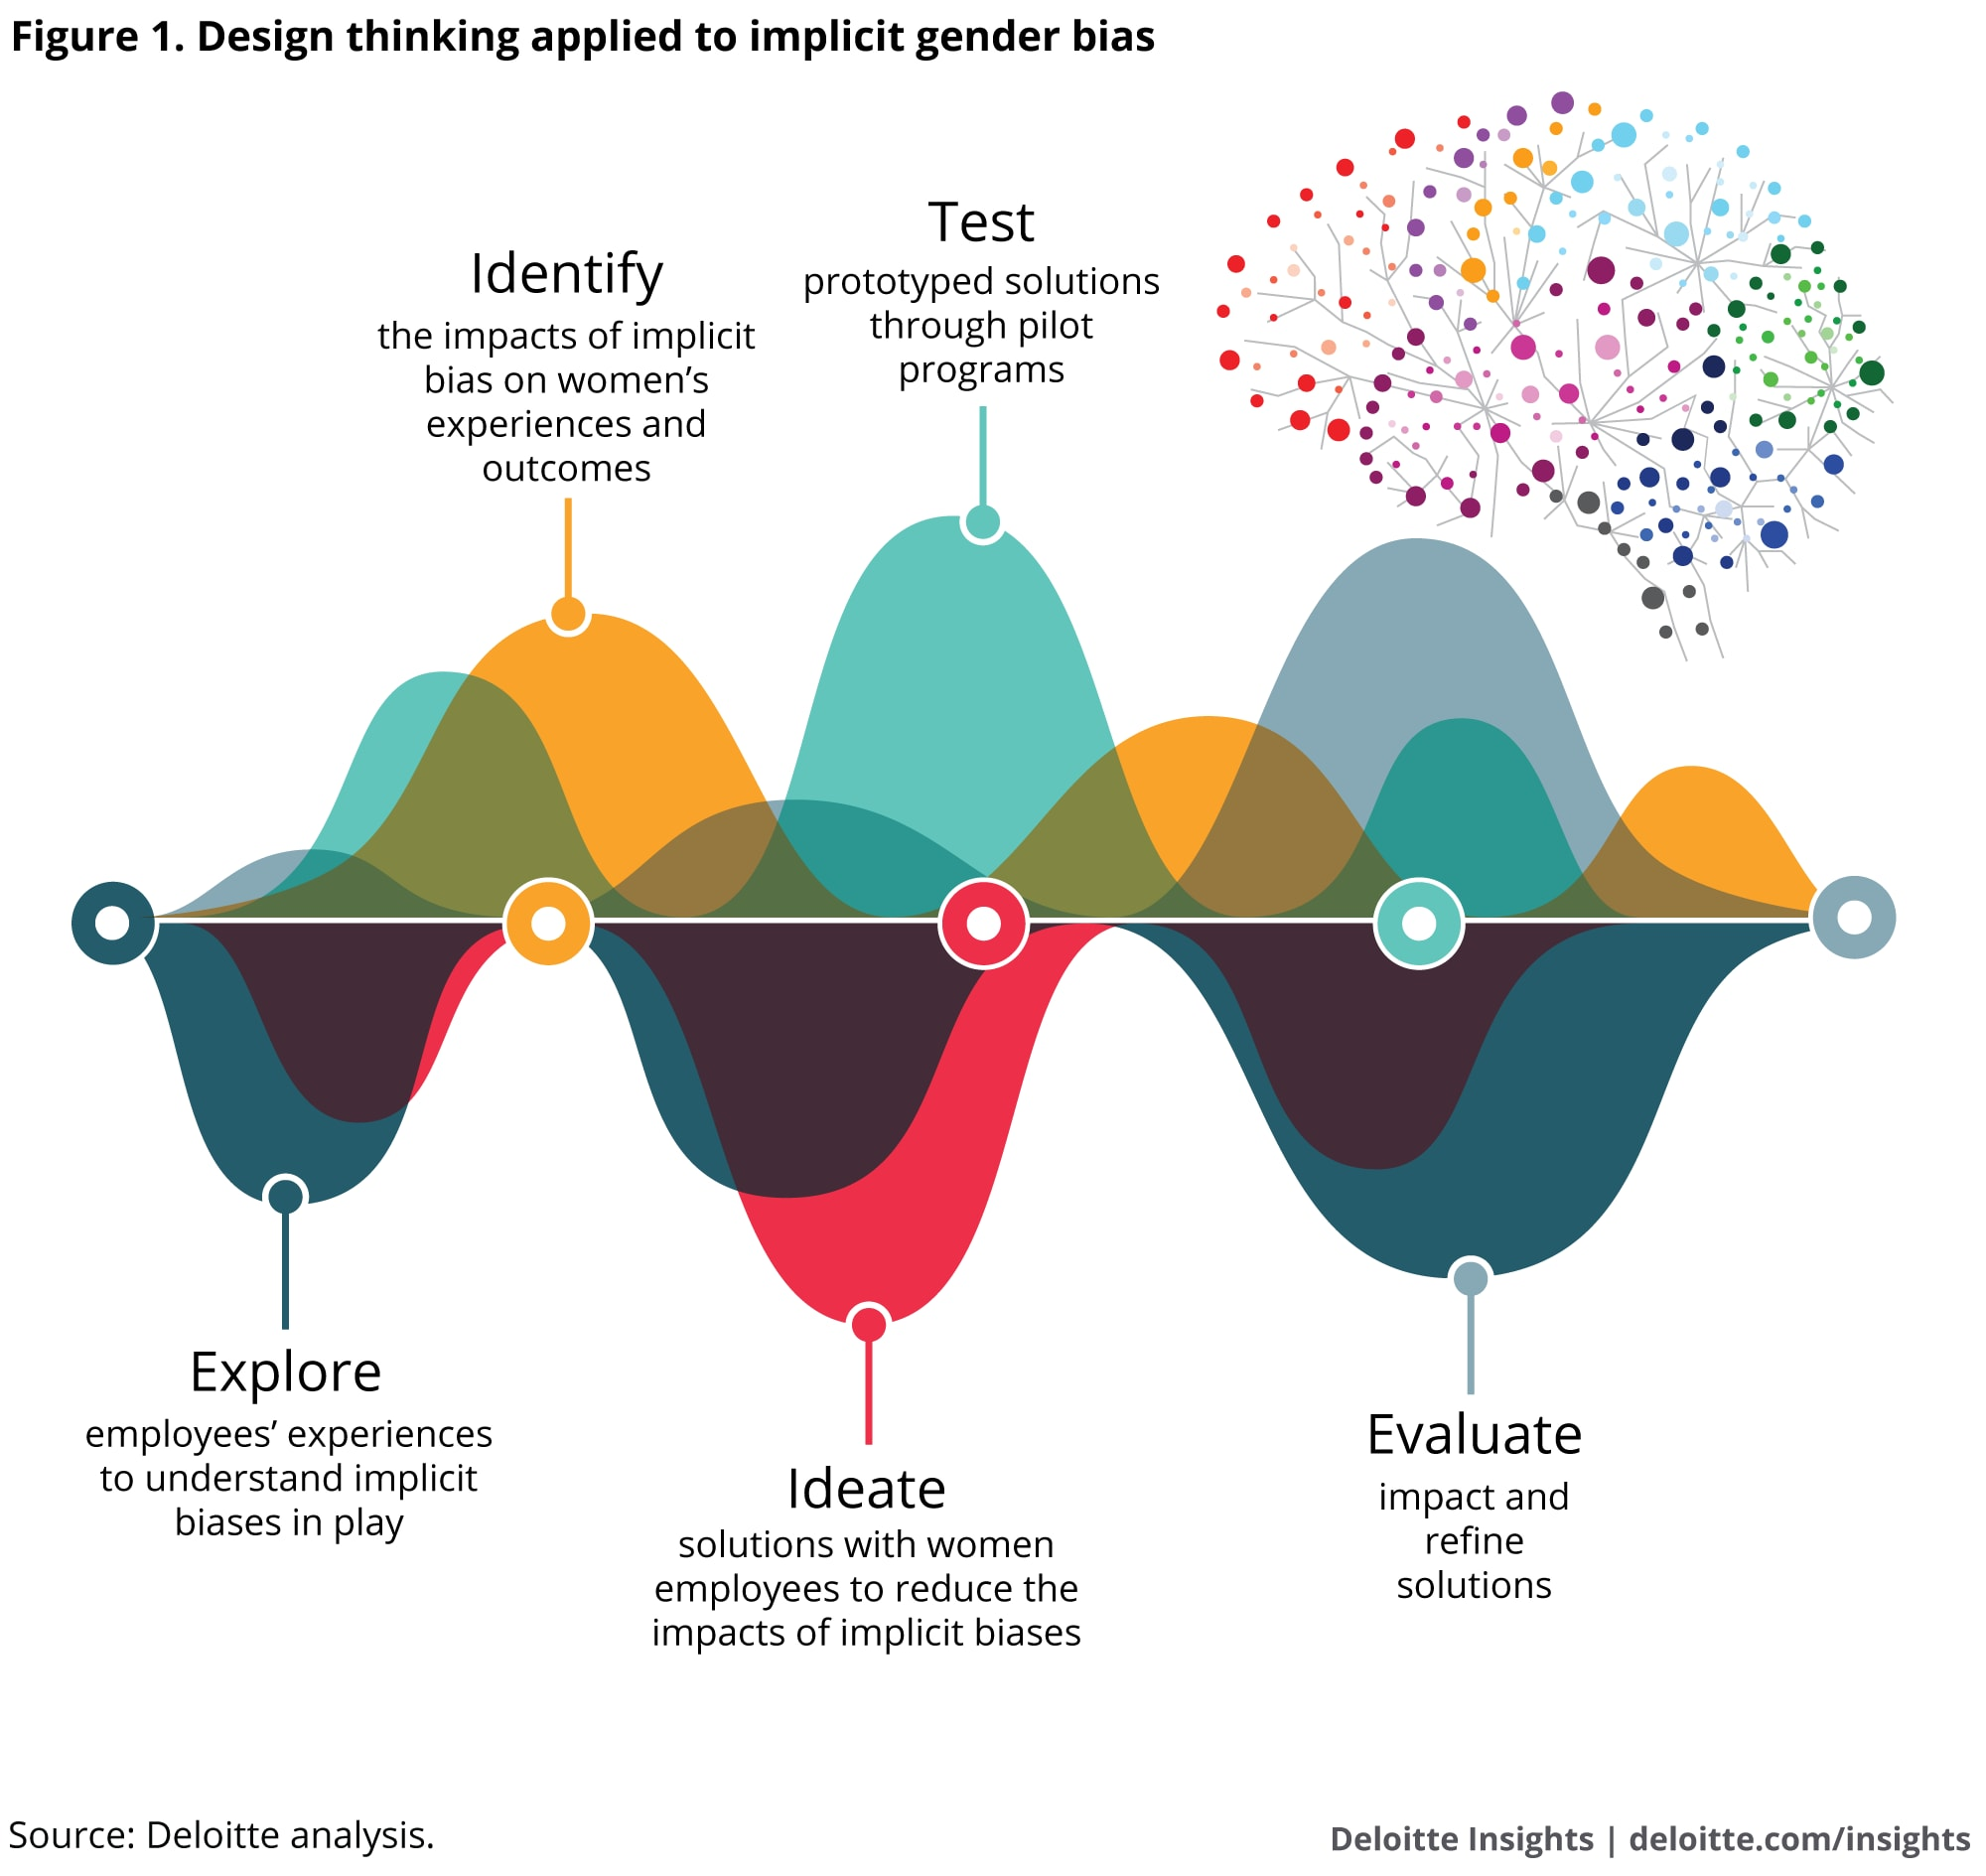 Design thinking applied to implicit gender bias